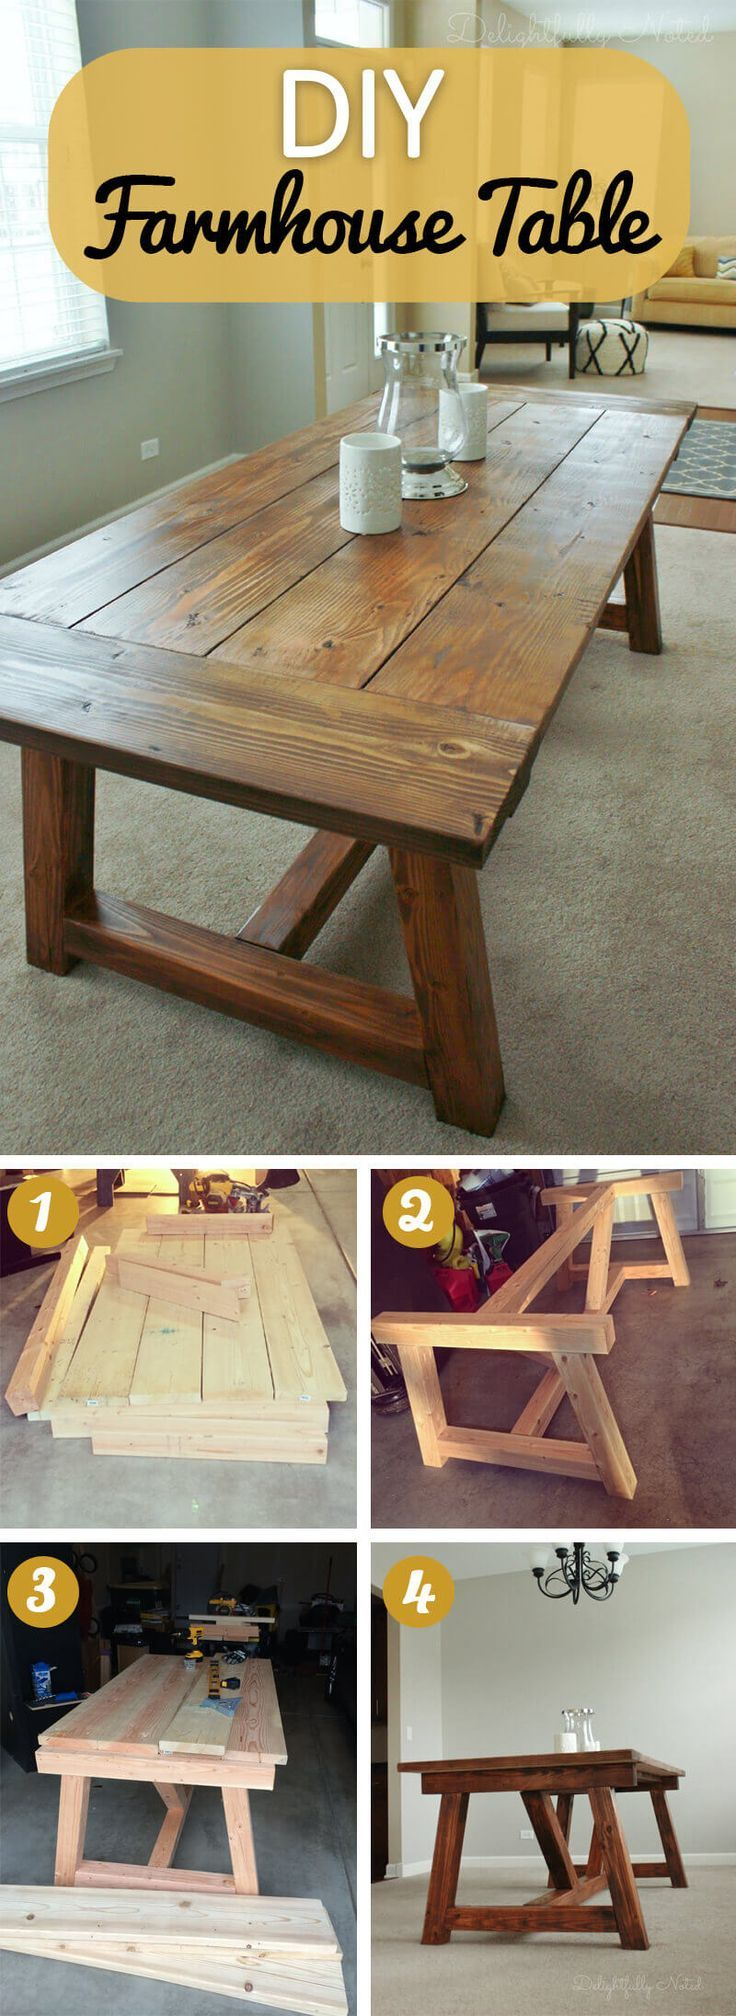 Build the Designer Table You Can't Afford